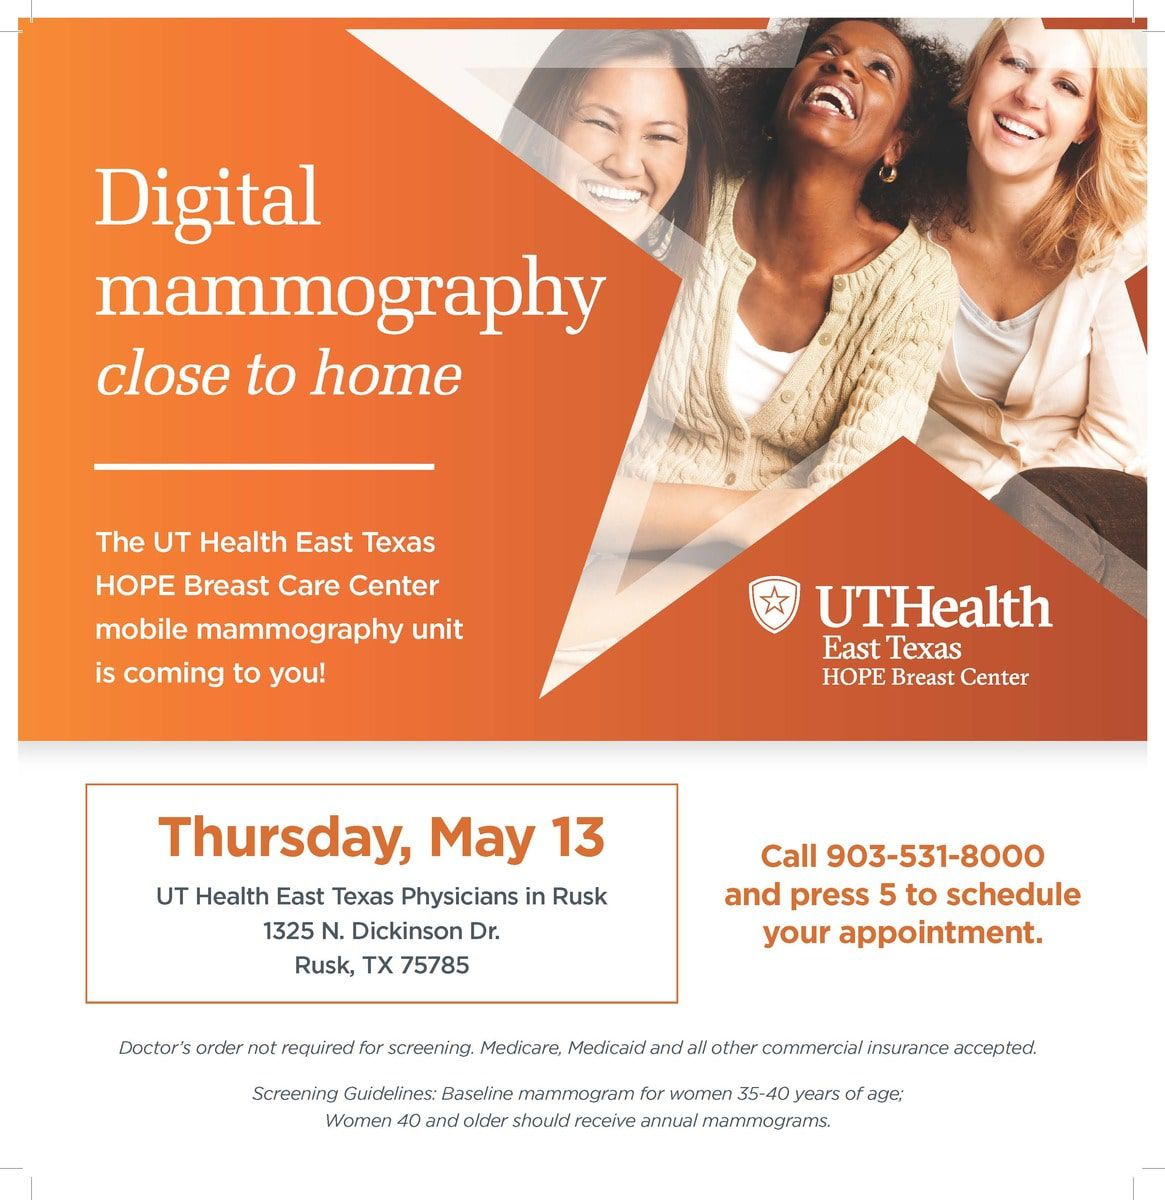 Digital mammography close to home